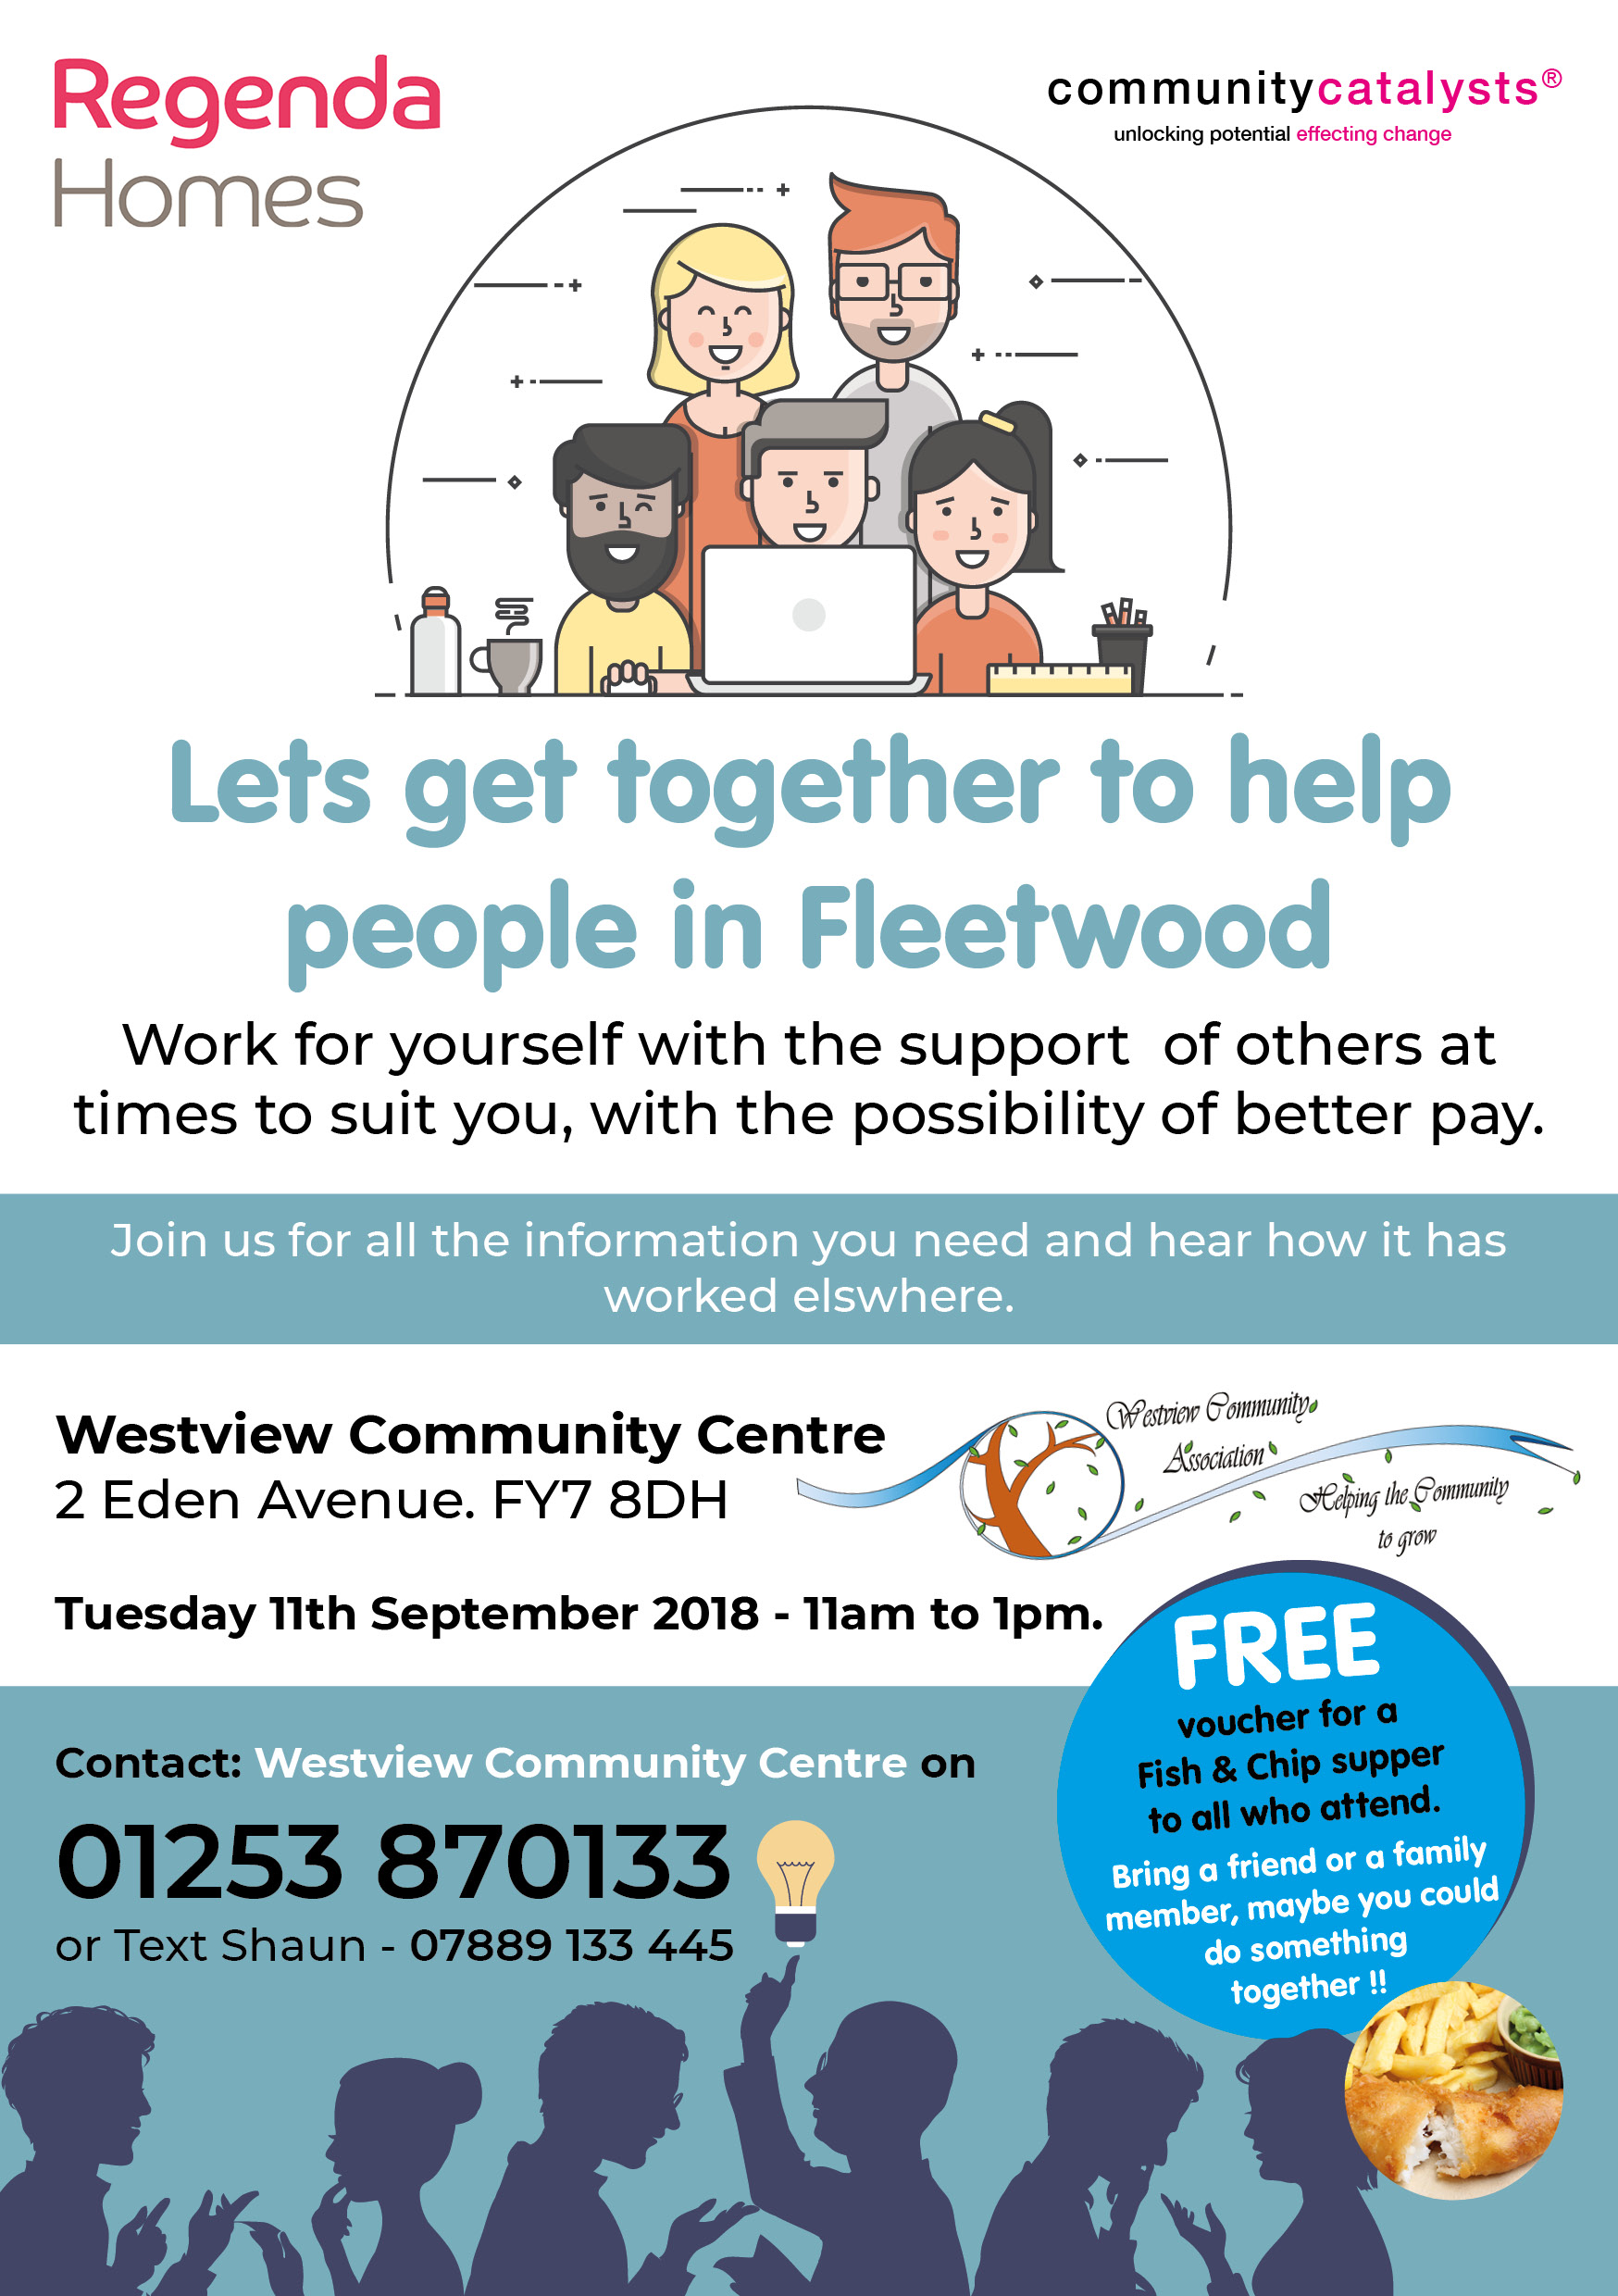 Lets get together to help people in Fleetwood